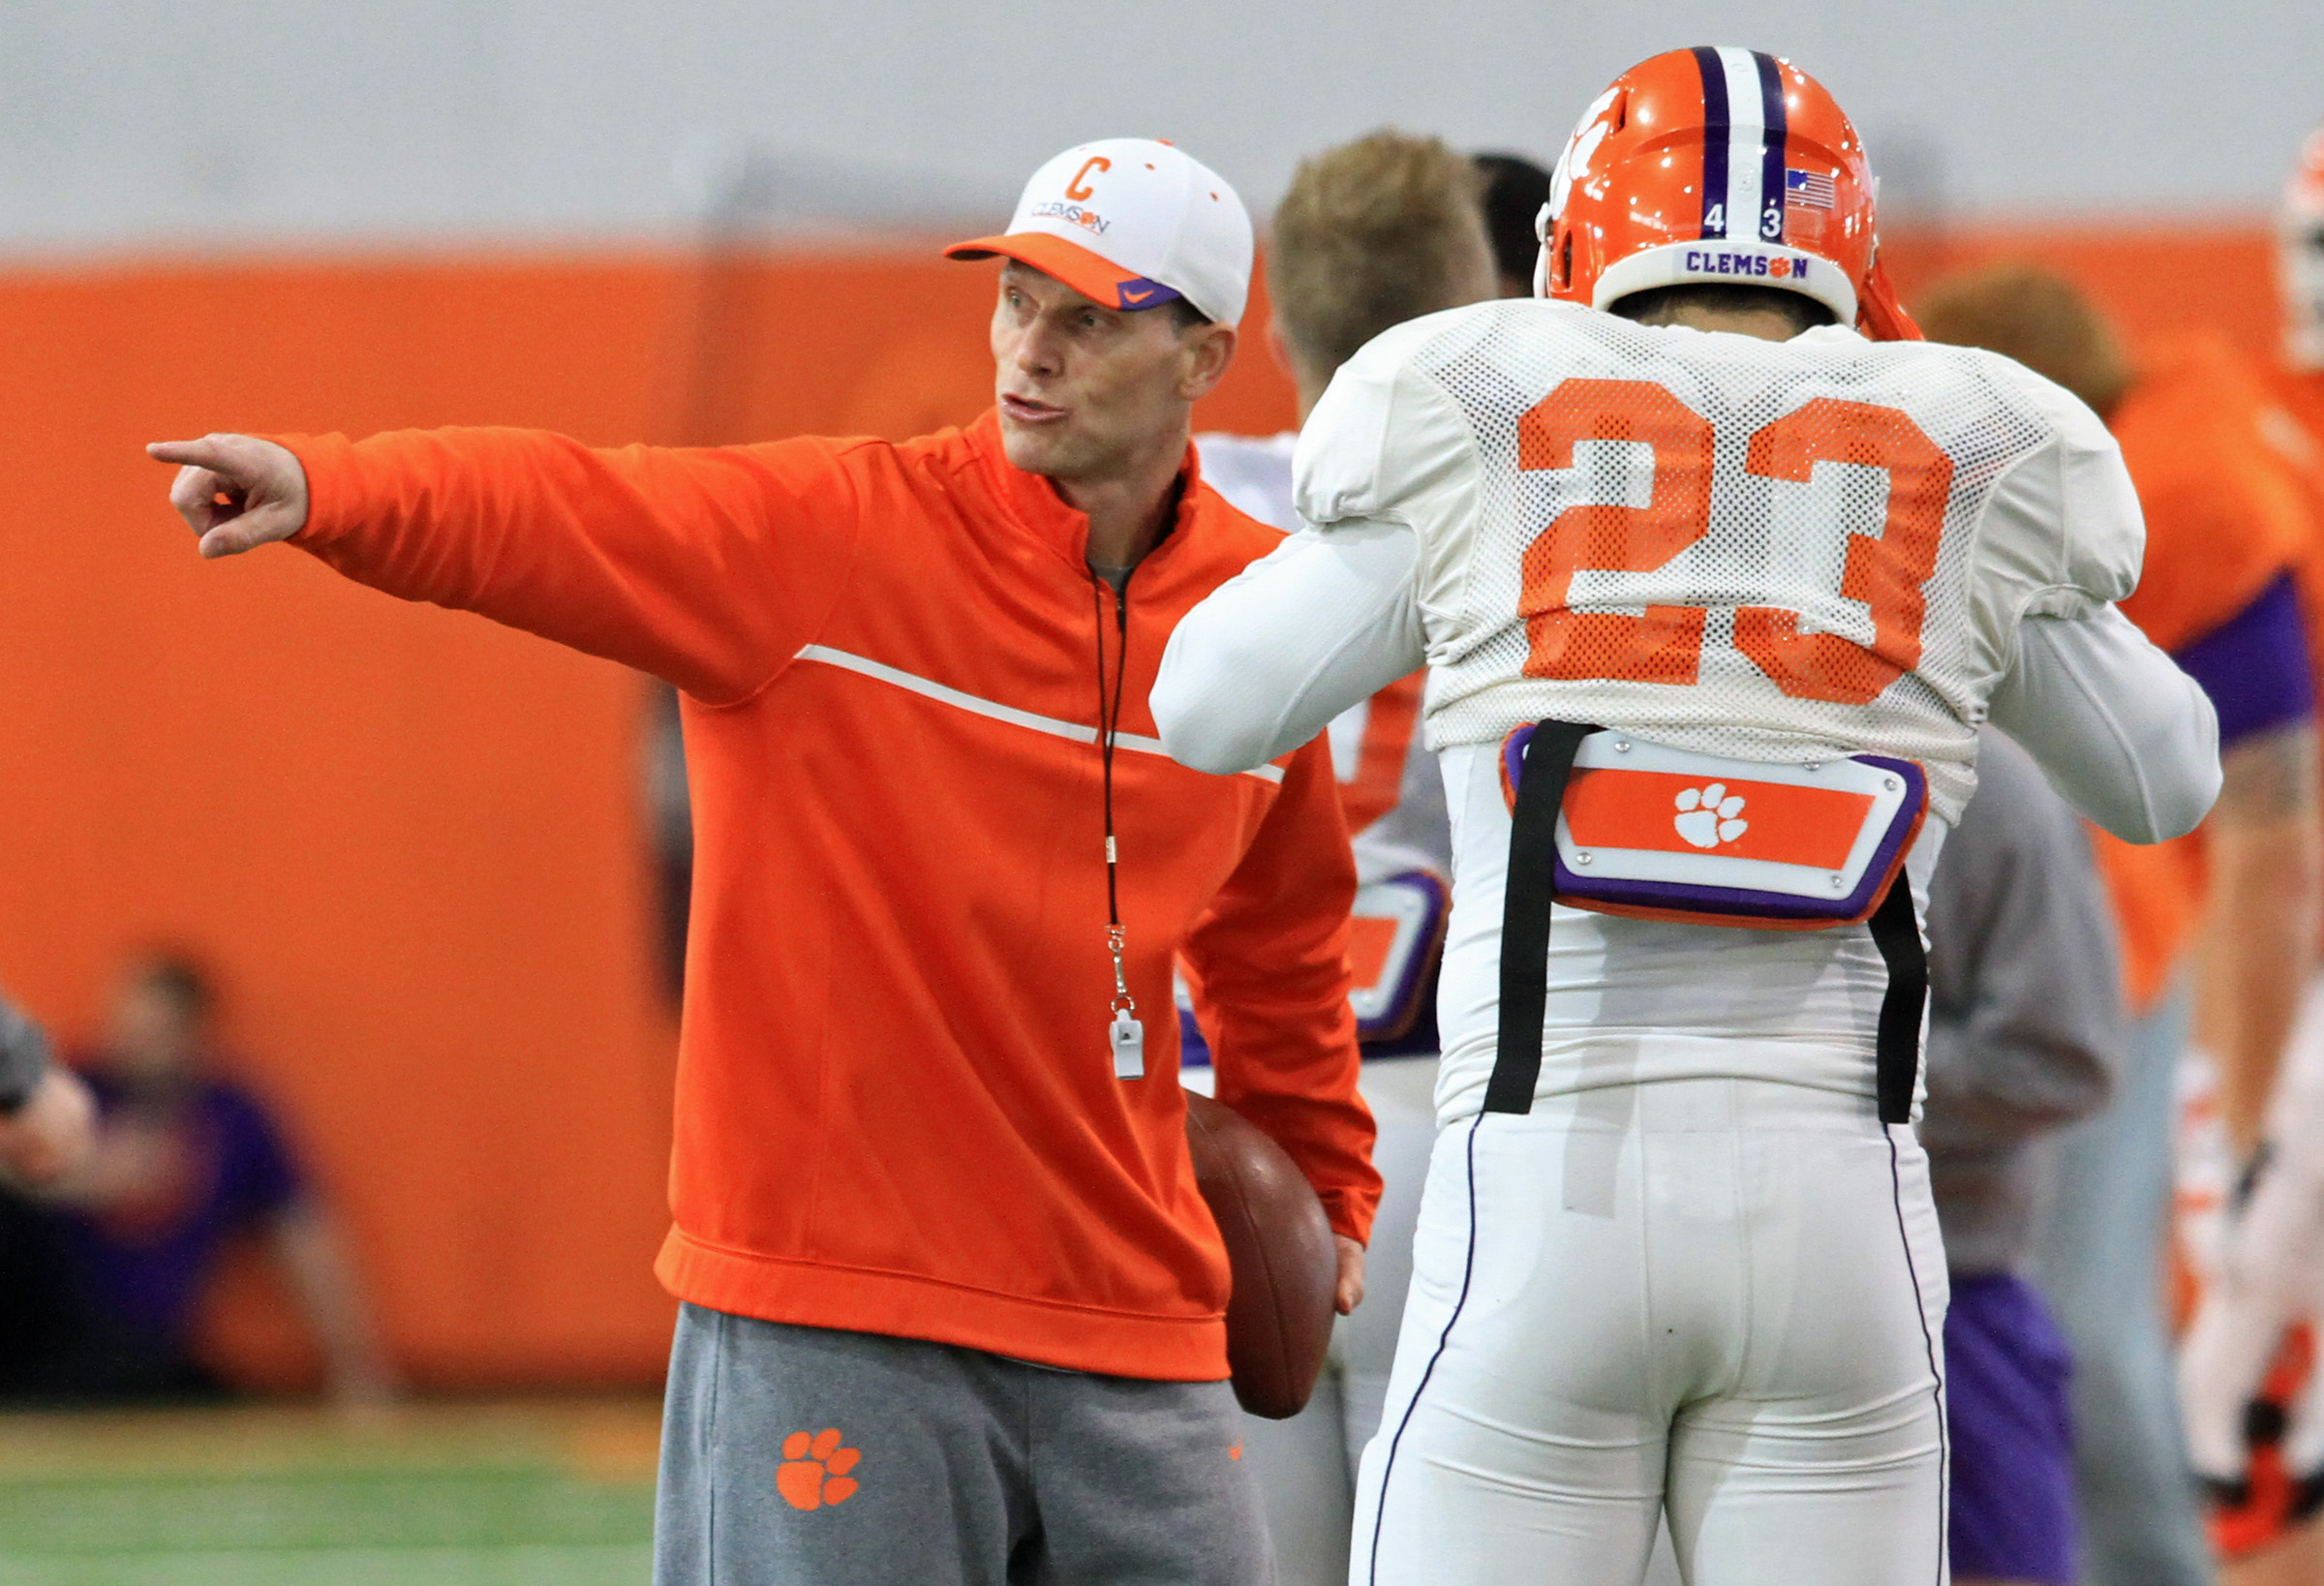 FILE - In this Saturday, Dec. 13, 2014, file photo, Clemson defensive coordinator Brent Venables, left, gives instructions during an NCAA college football bowl practice session, in Clemson, S.C. Former Oklahoma assistant Venables leads No. 1 Clemson's def